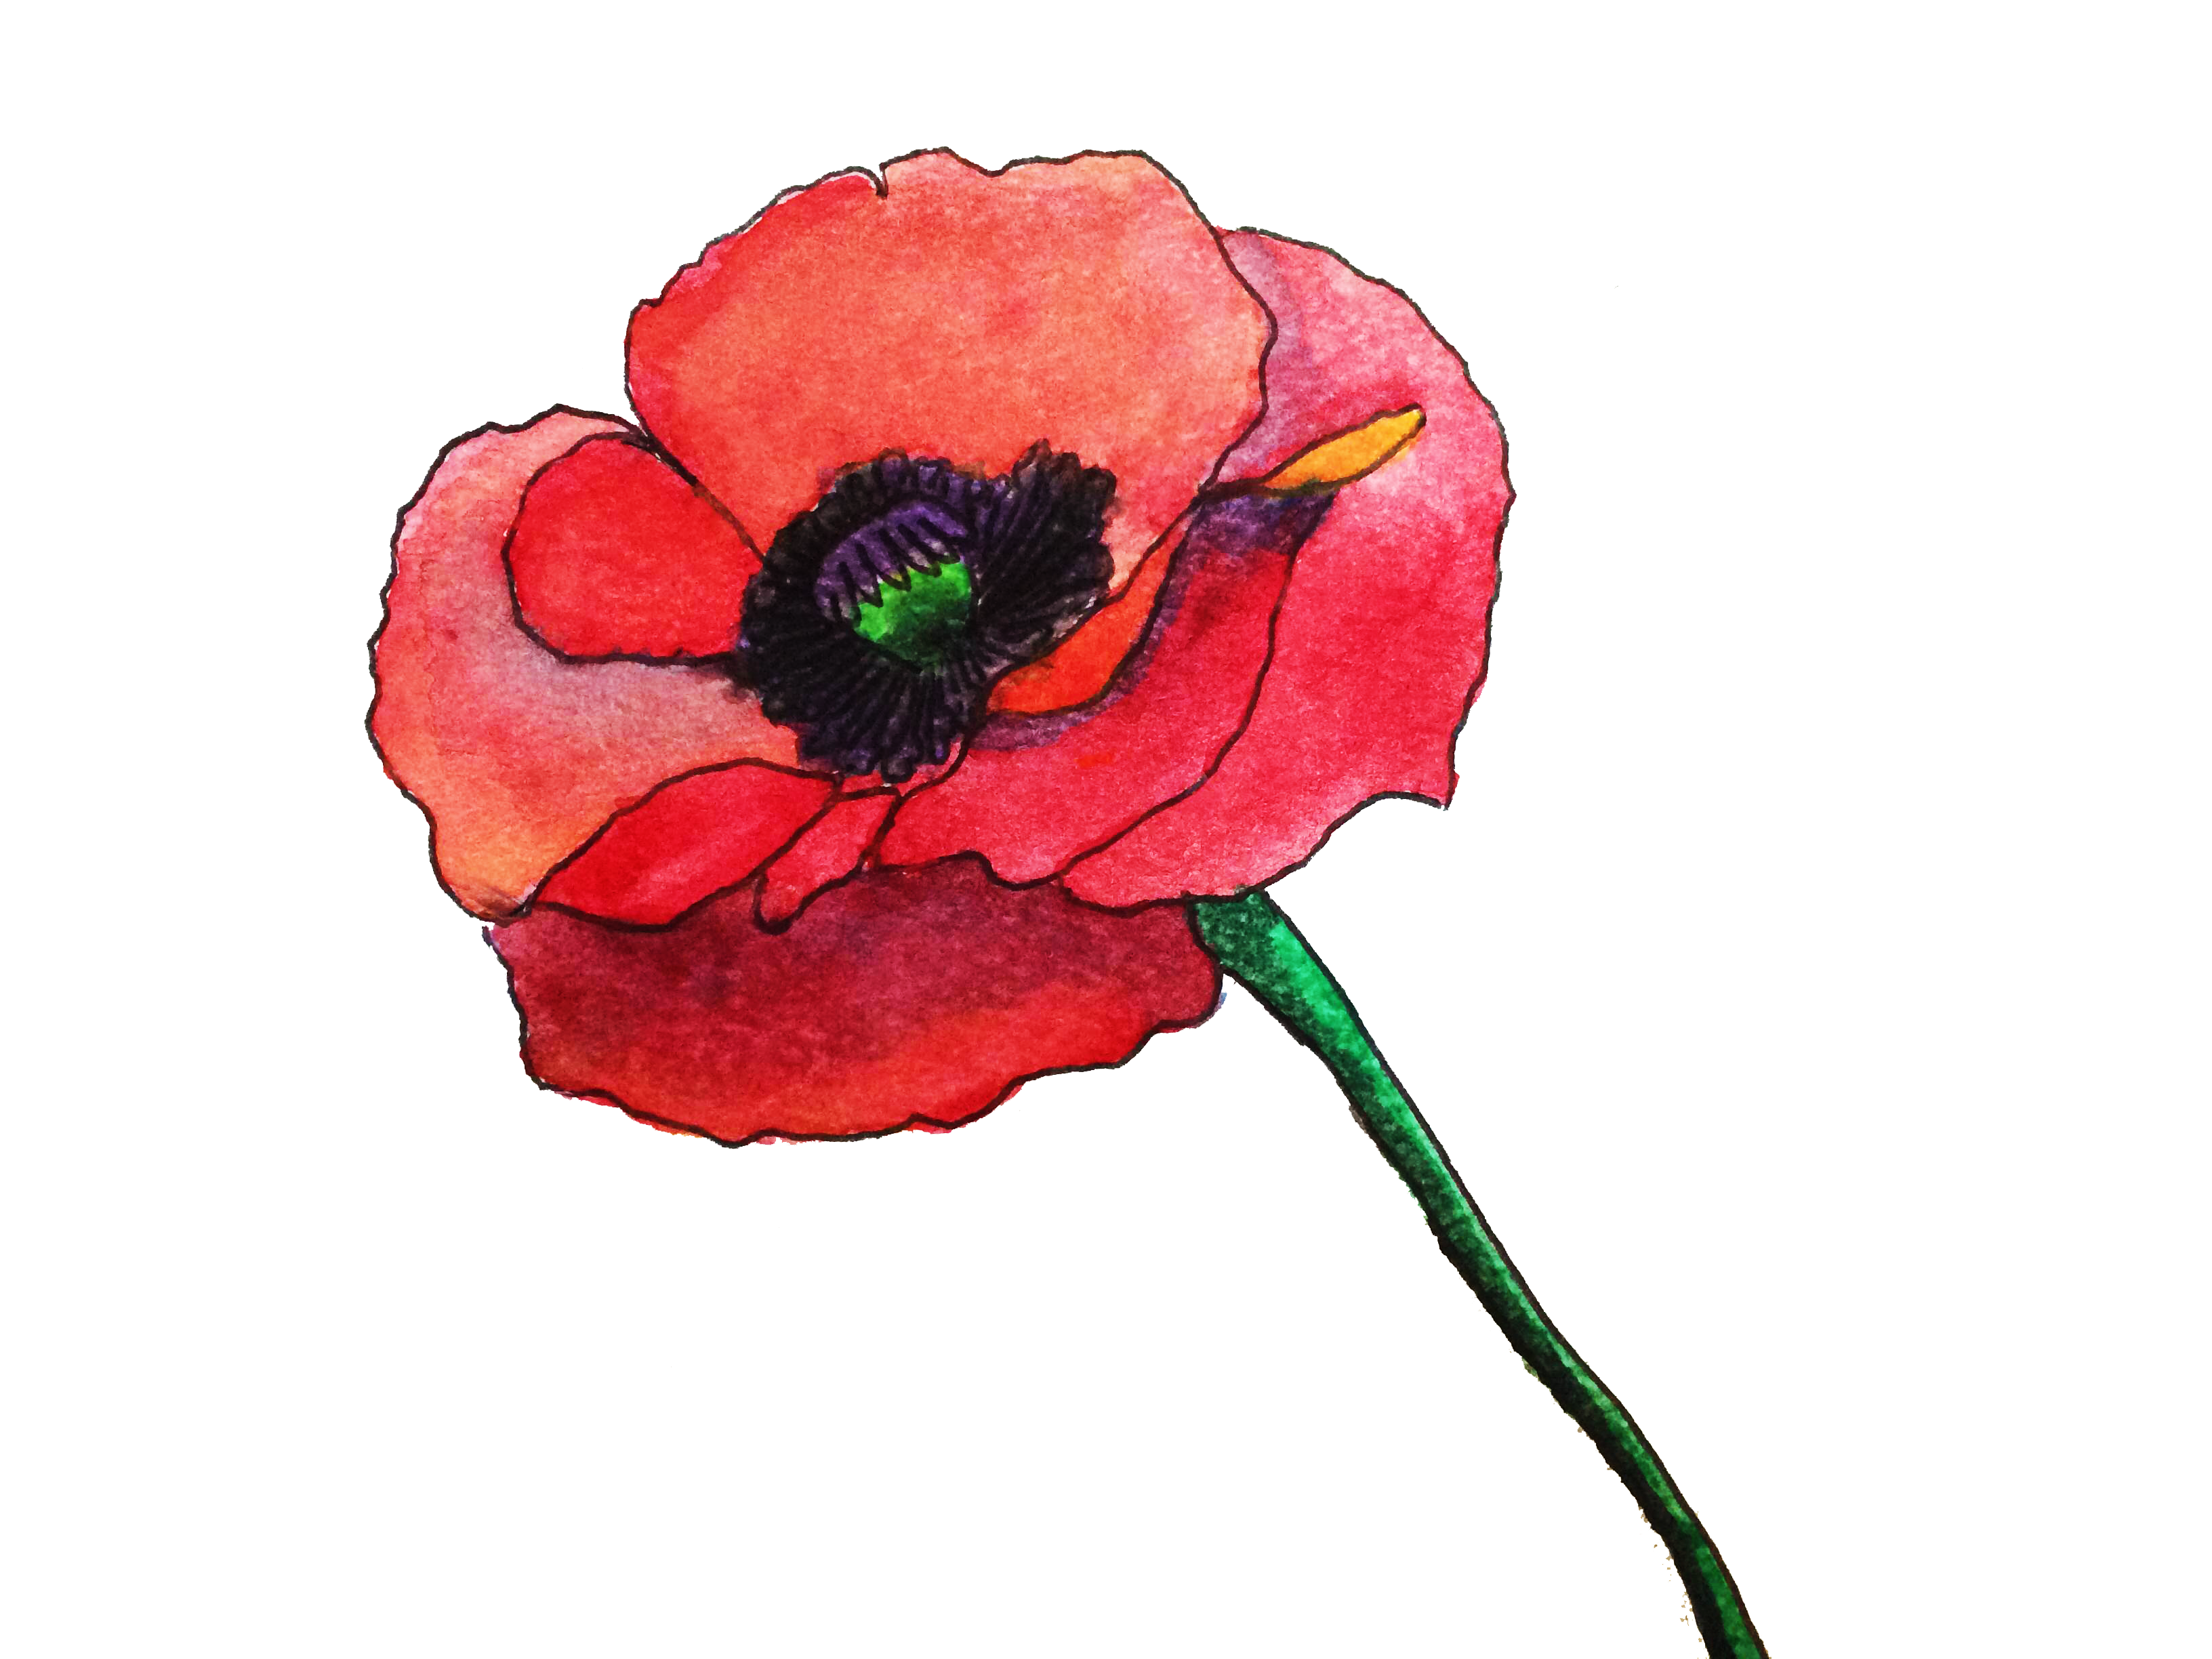 Free graphics painted by. Poppy clipart watercolor